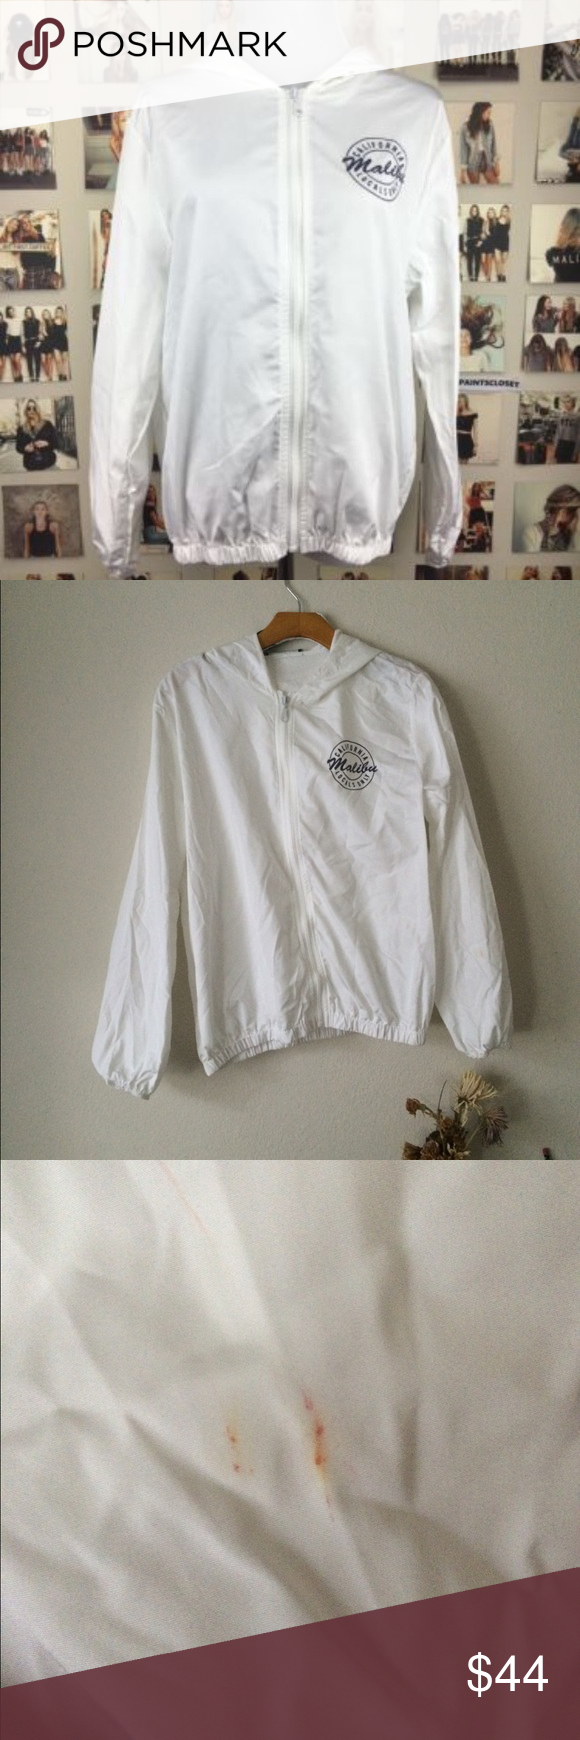 Brandy Melville Malibu windbreaker Has a small red stain can be taken out with bleach. Price is firm no trades cheaper on Ⓜ️ and ️️ Brandy Melville Jackets & Coats